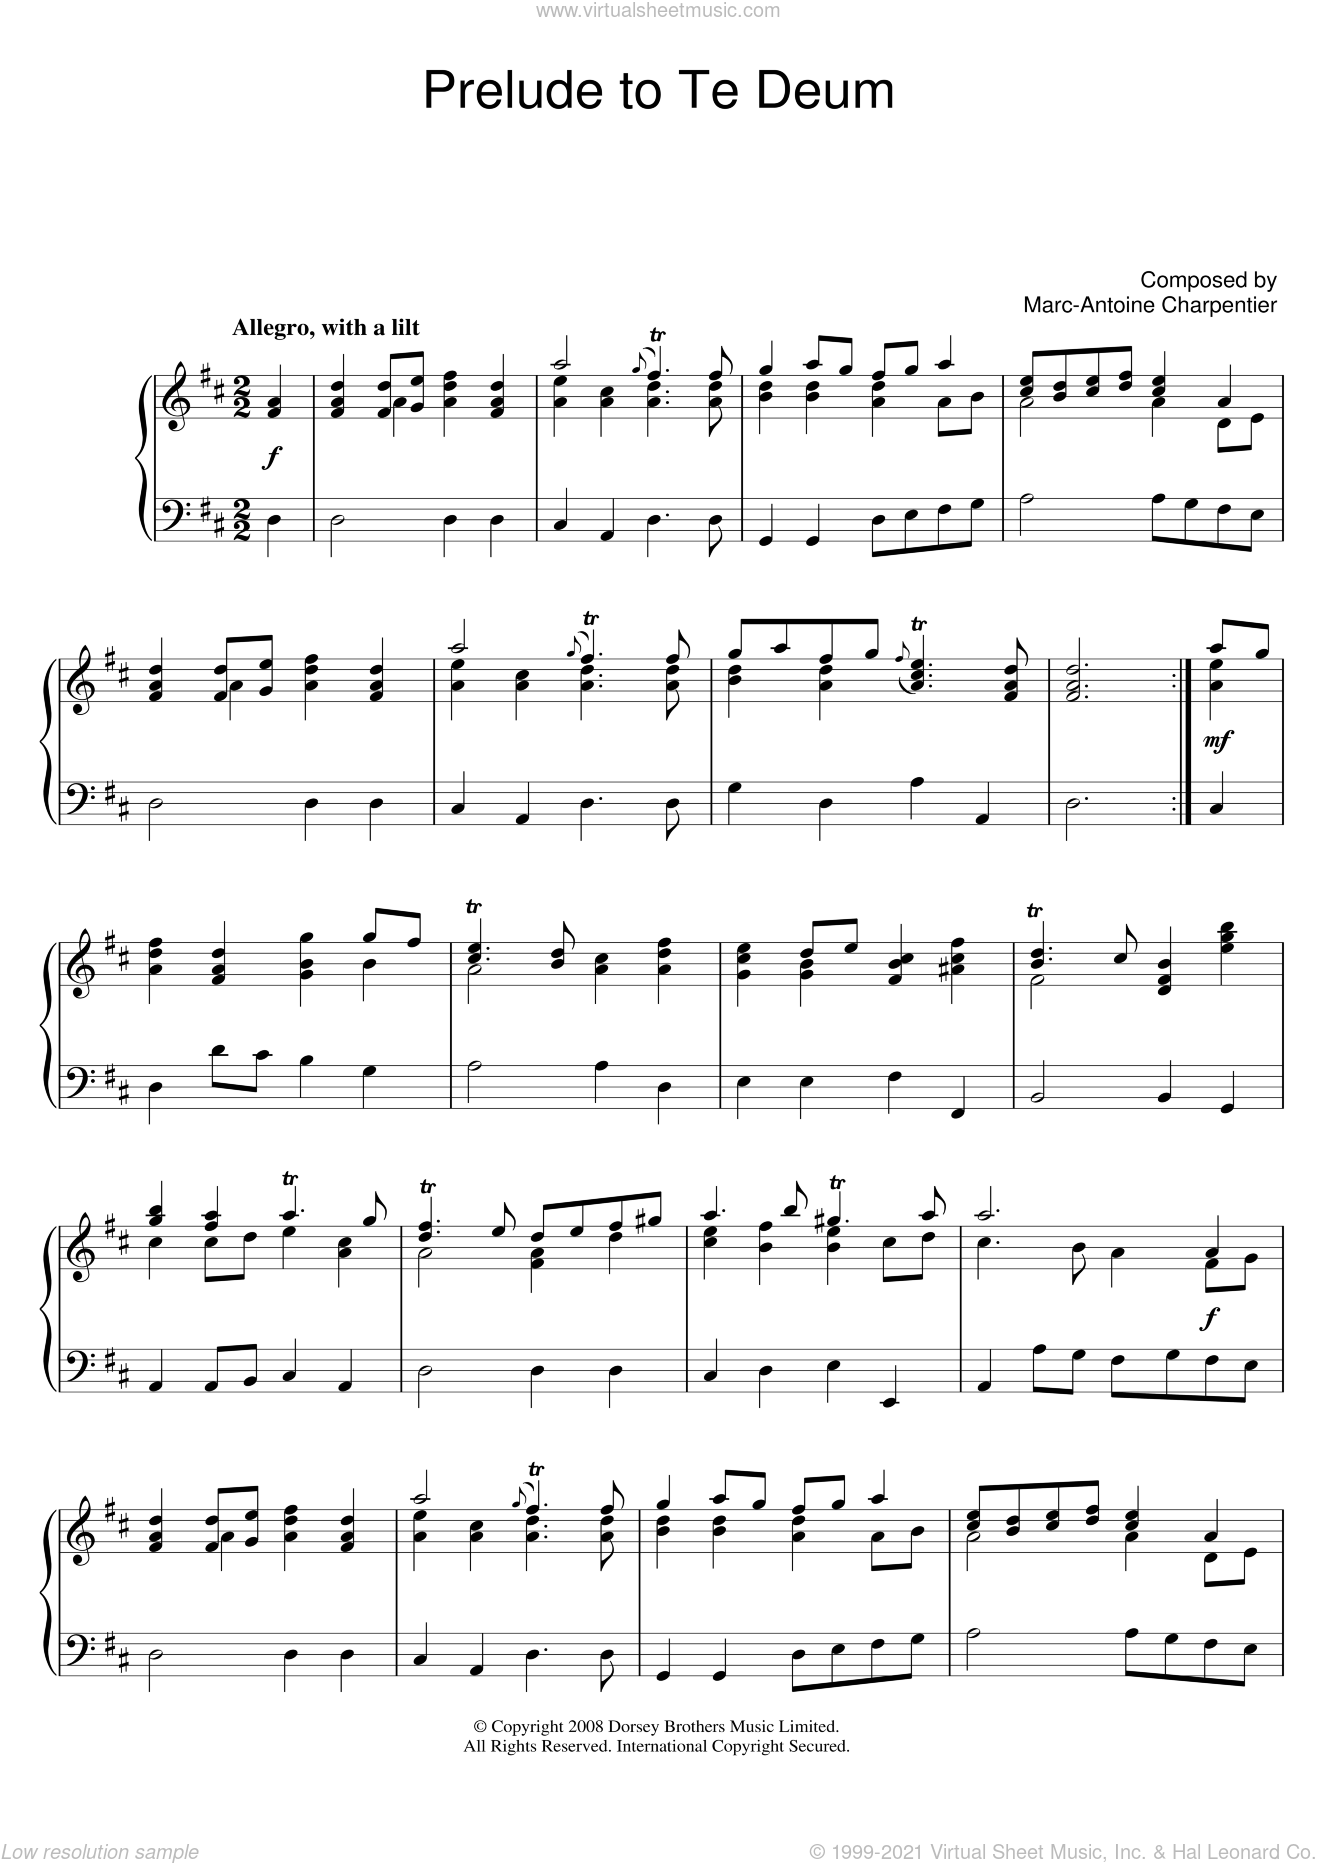 Prelude (from Te Deum) sheet music for piano solo by Marc-Antoine Charpentier, classical score, intermediate skill level